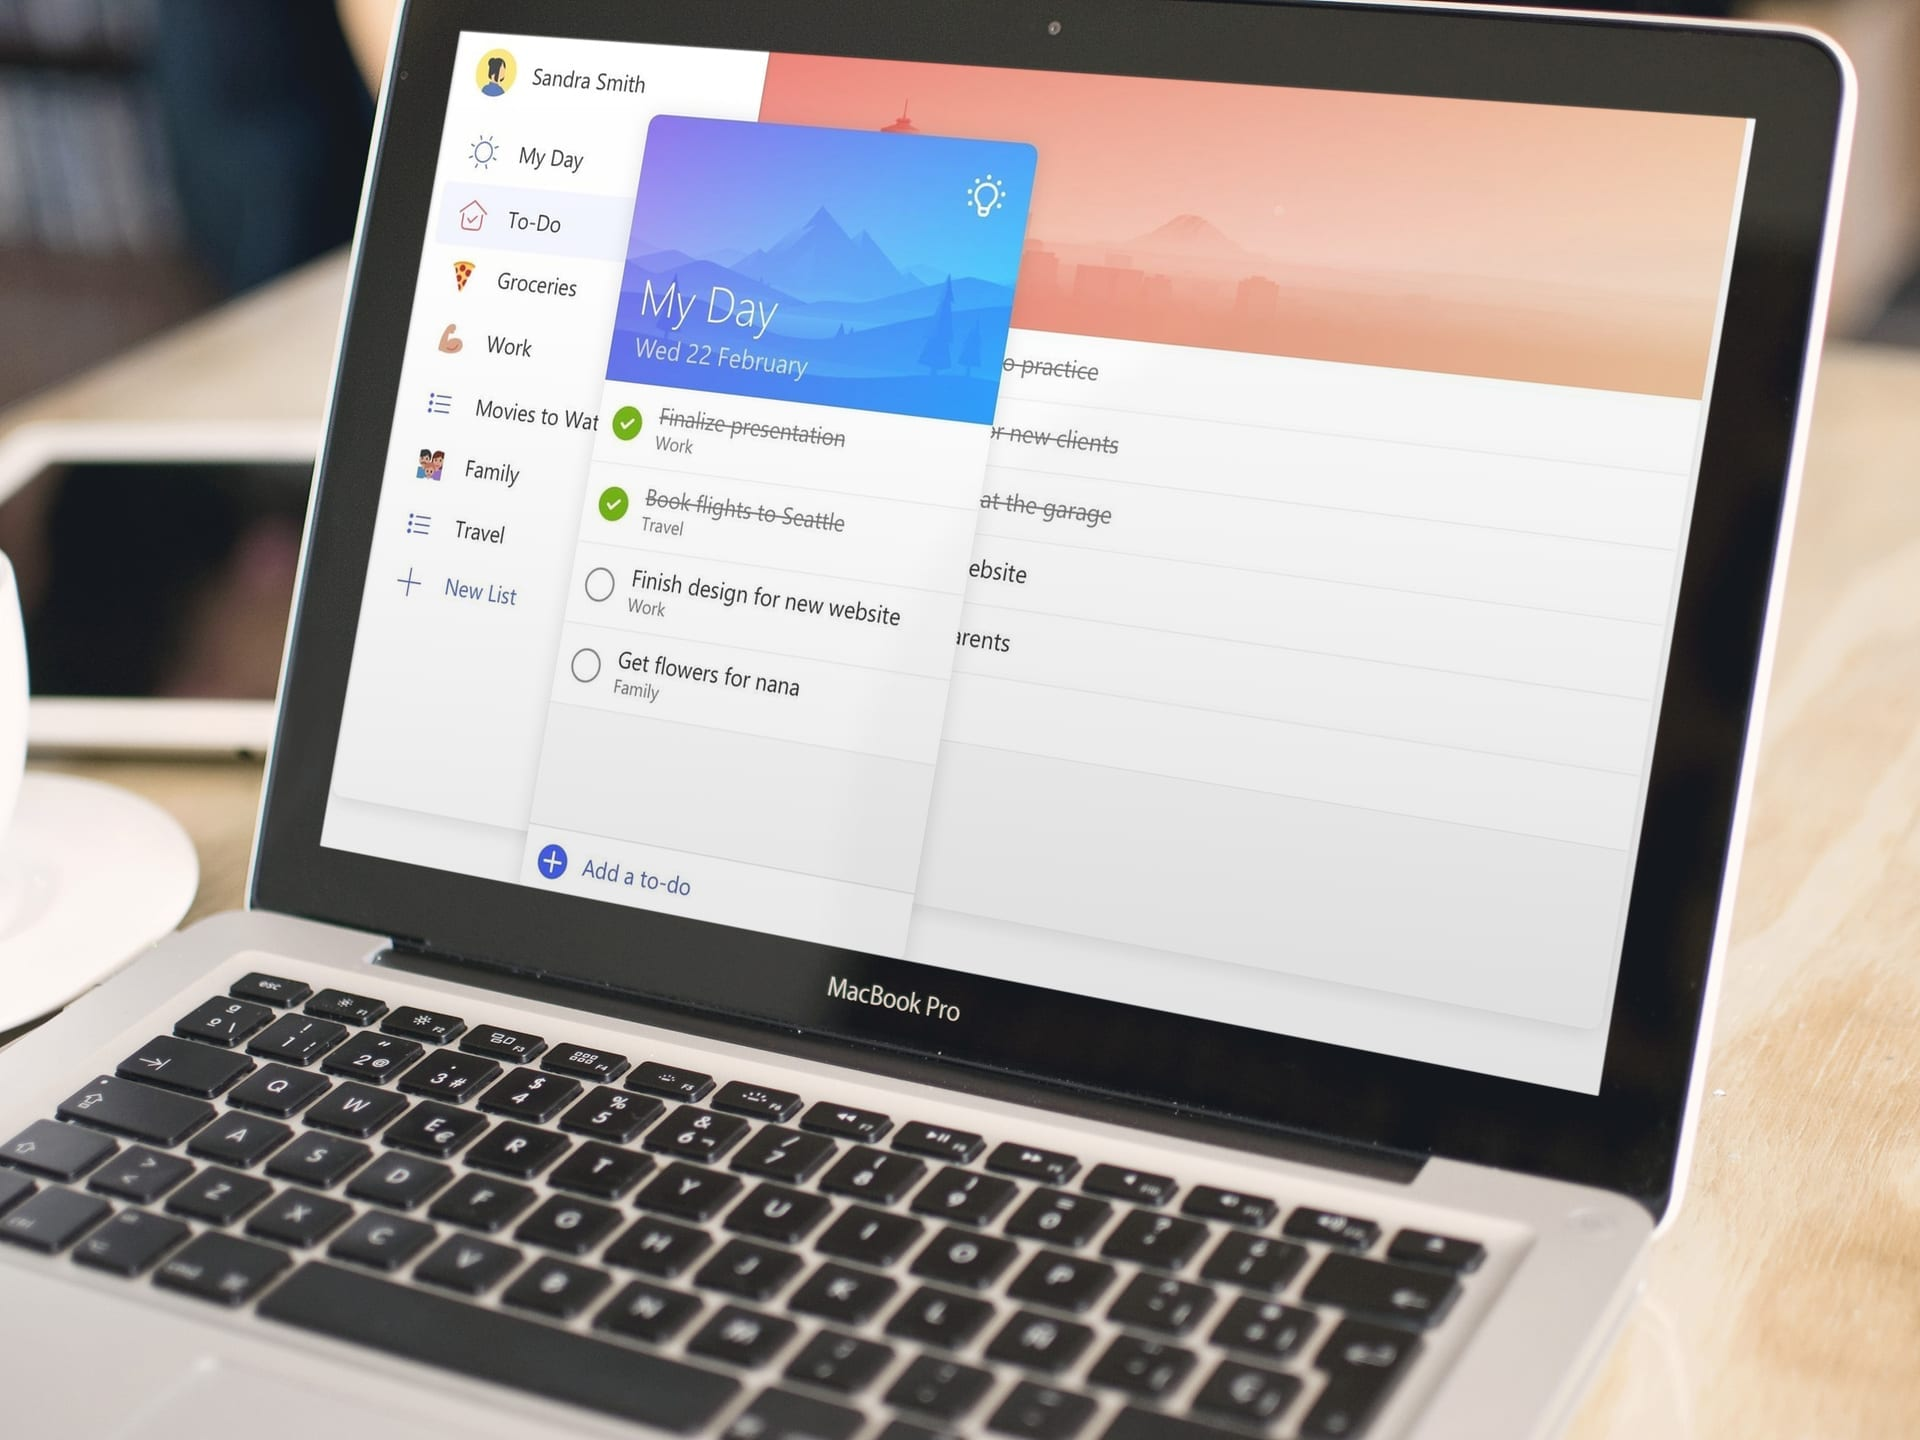 microsoft-launch-to-do-now-available-in-office-365.jpg